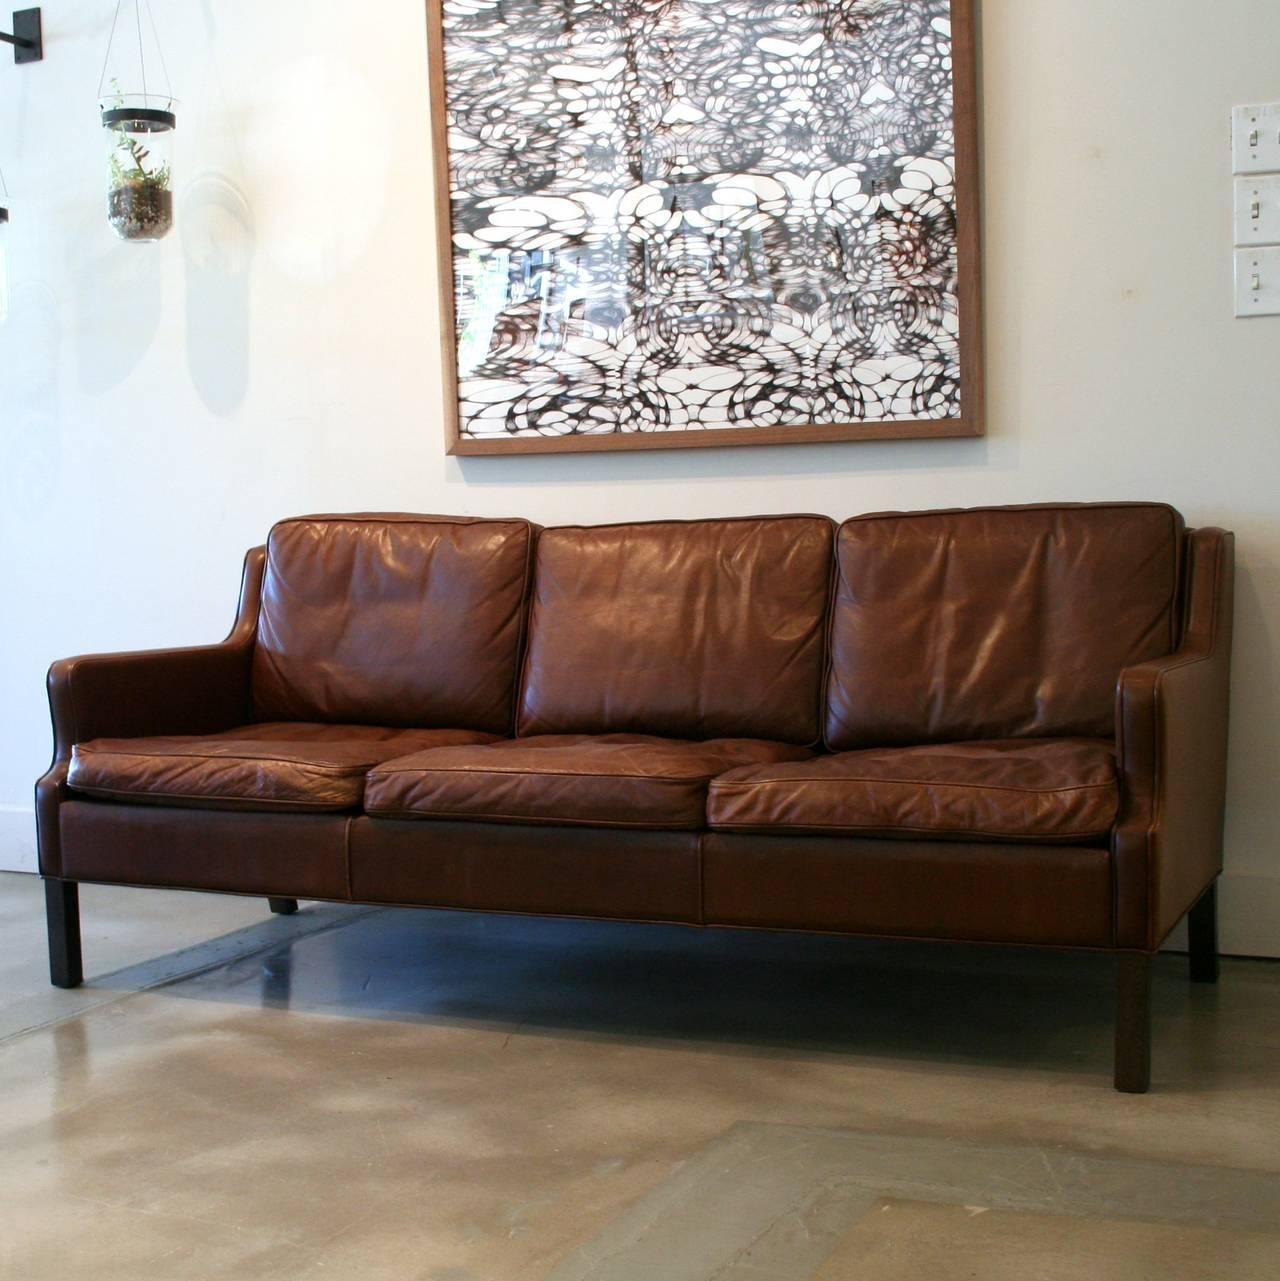 Vintage Danish Brown Leather Sofa At 1Stdibs With Regard To Danish Leather Sofas (Image 19 of 20)